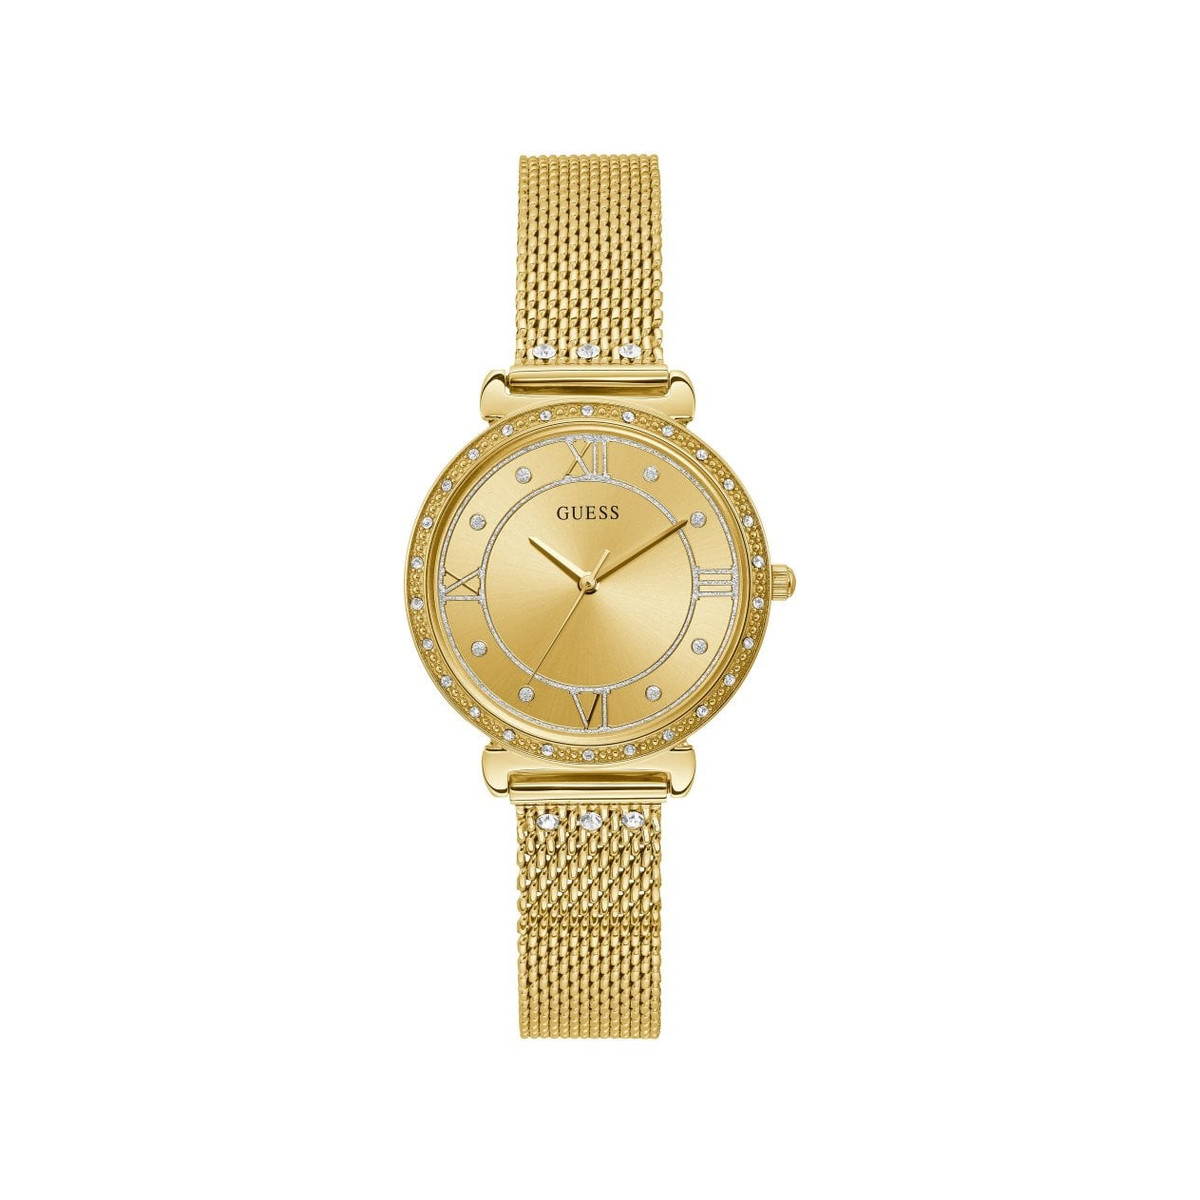 Montre GUESS LADIES DRESS JEWEL Bracelet Acier